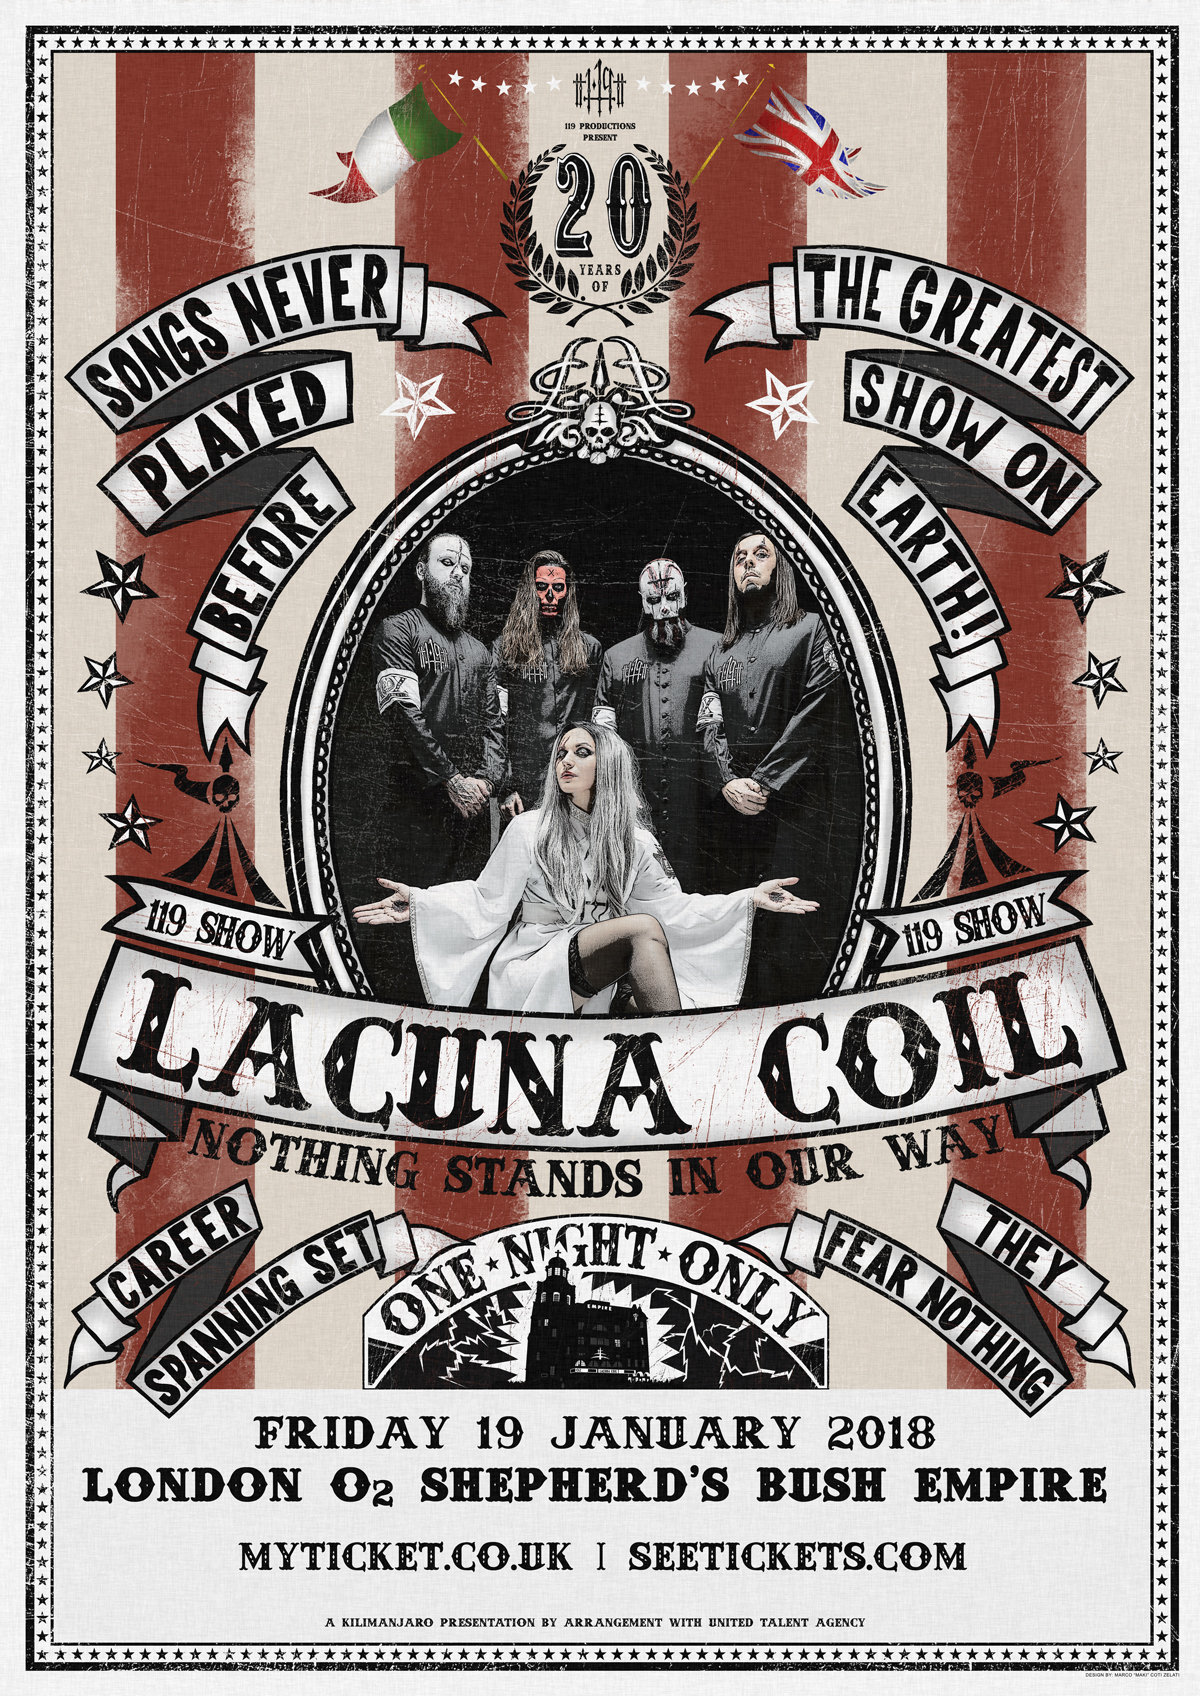 "LACUNA COIL announce 20th anniversary show ""Nothing Stands In Our Way"""